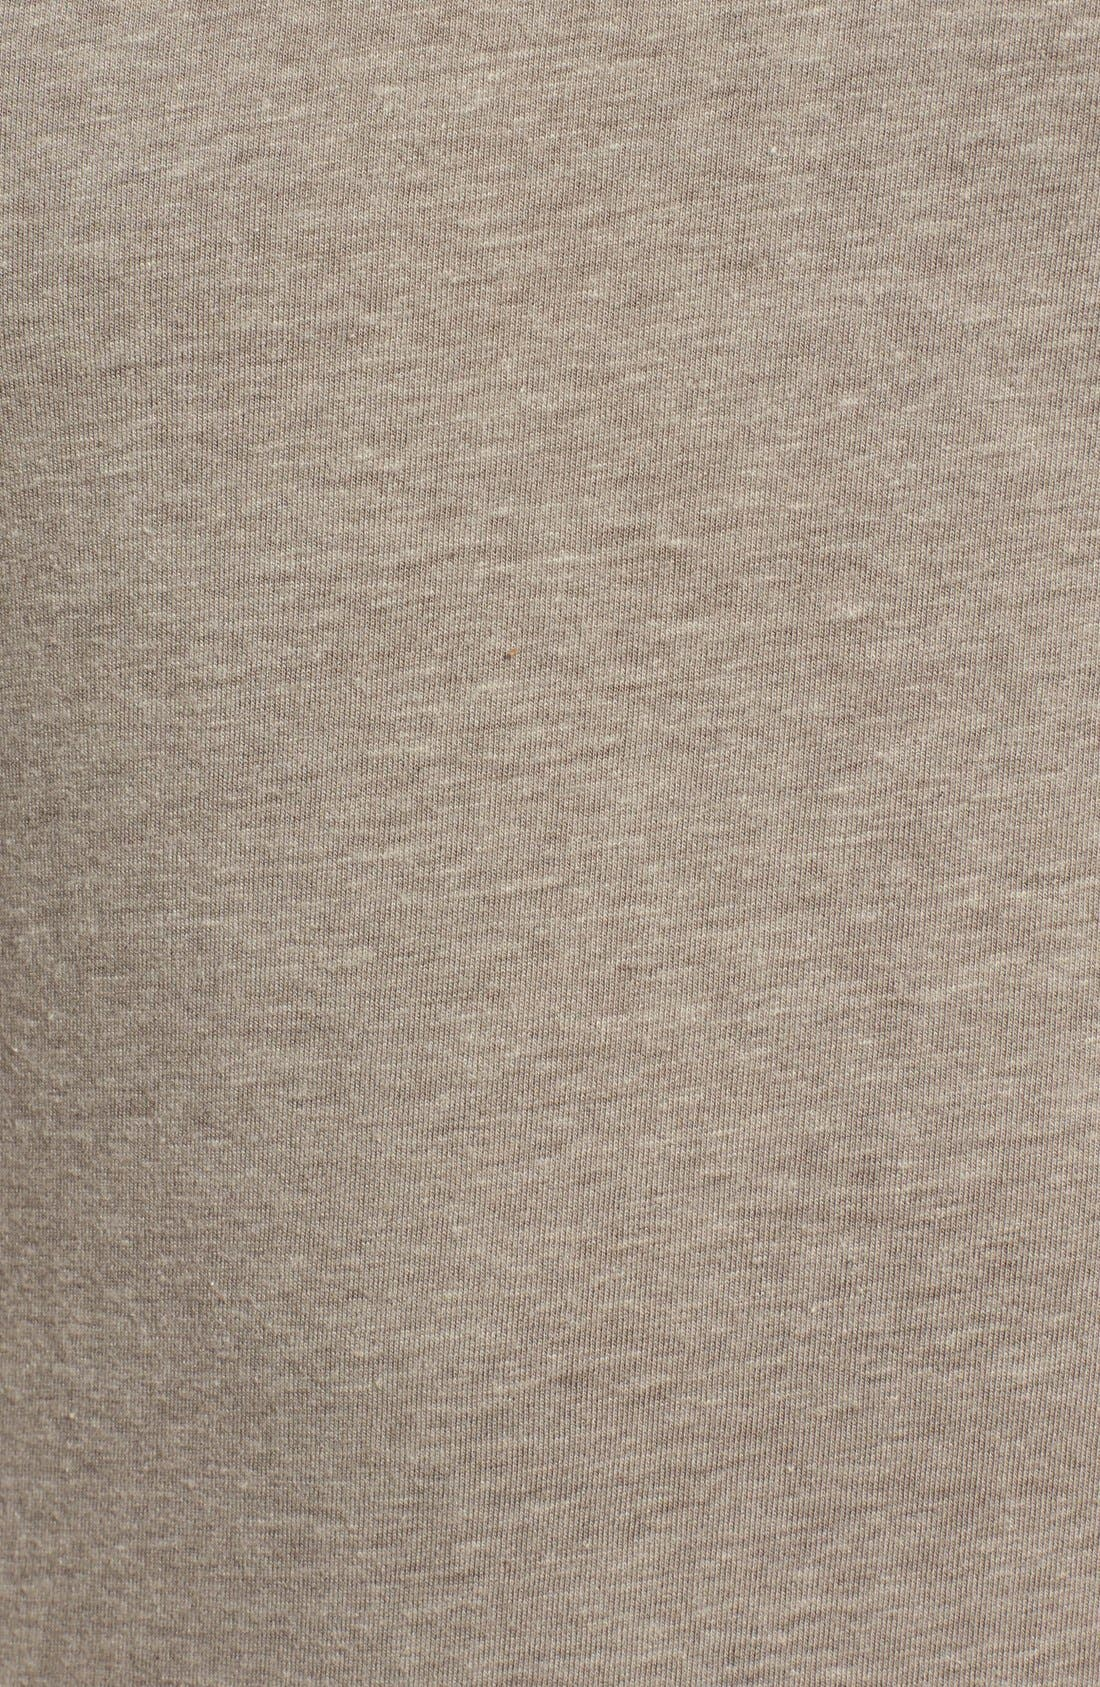 'Grubby' Graphic T-Shirt,                             Alternate thumbnail 2, color,                             030